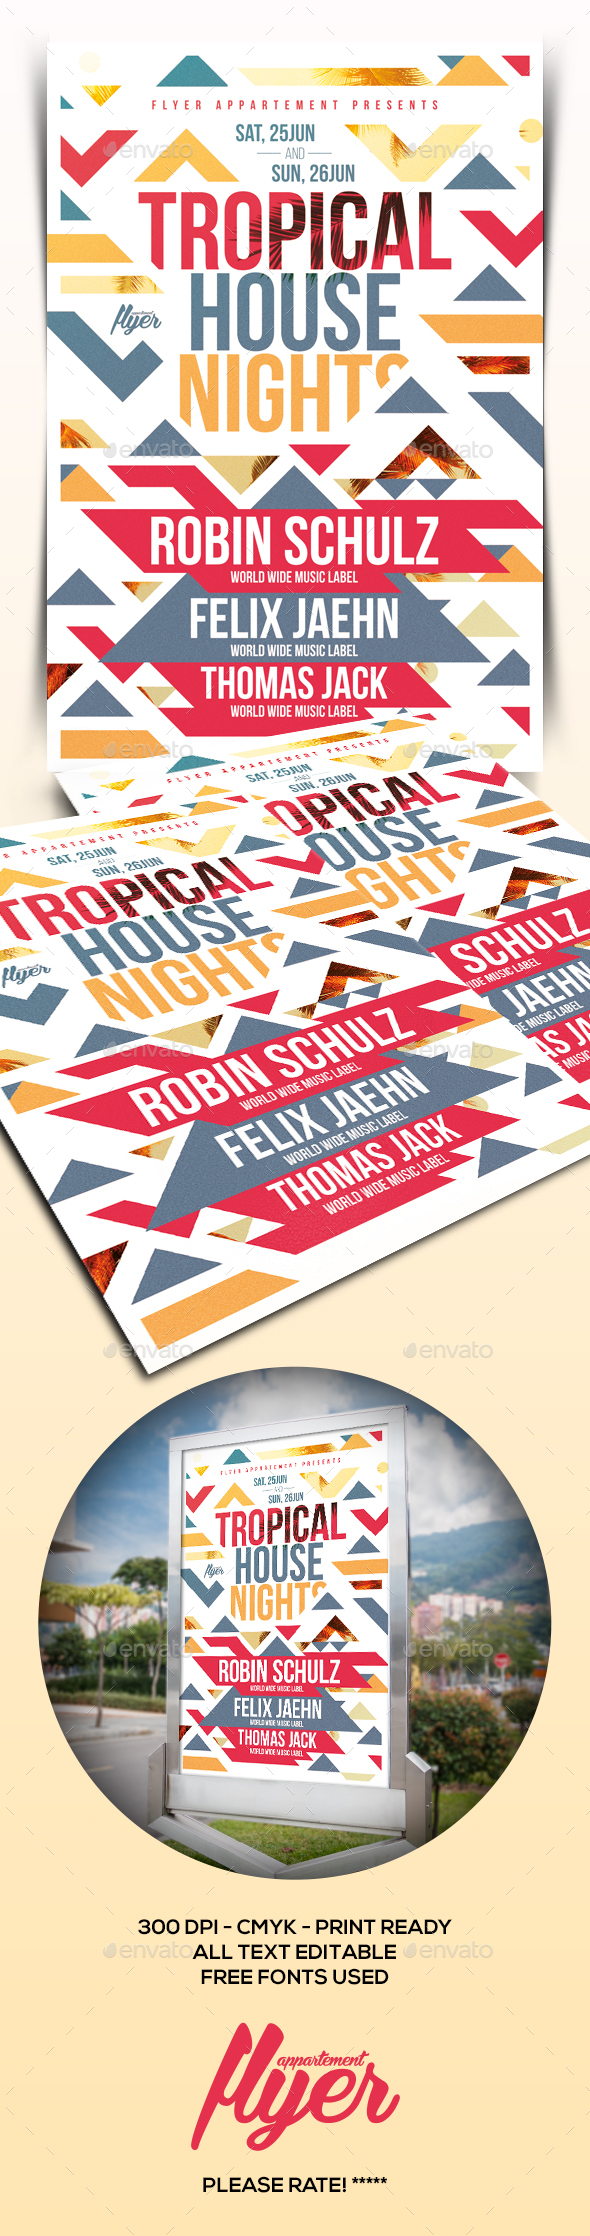 Tropical House Nights Flyer - Clubs & Parties Events